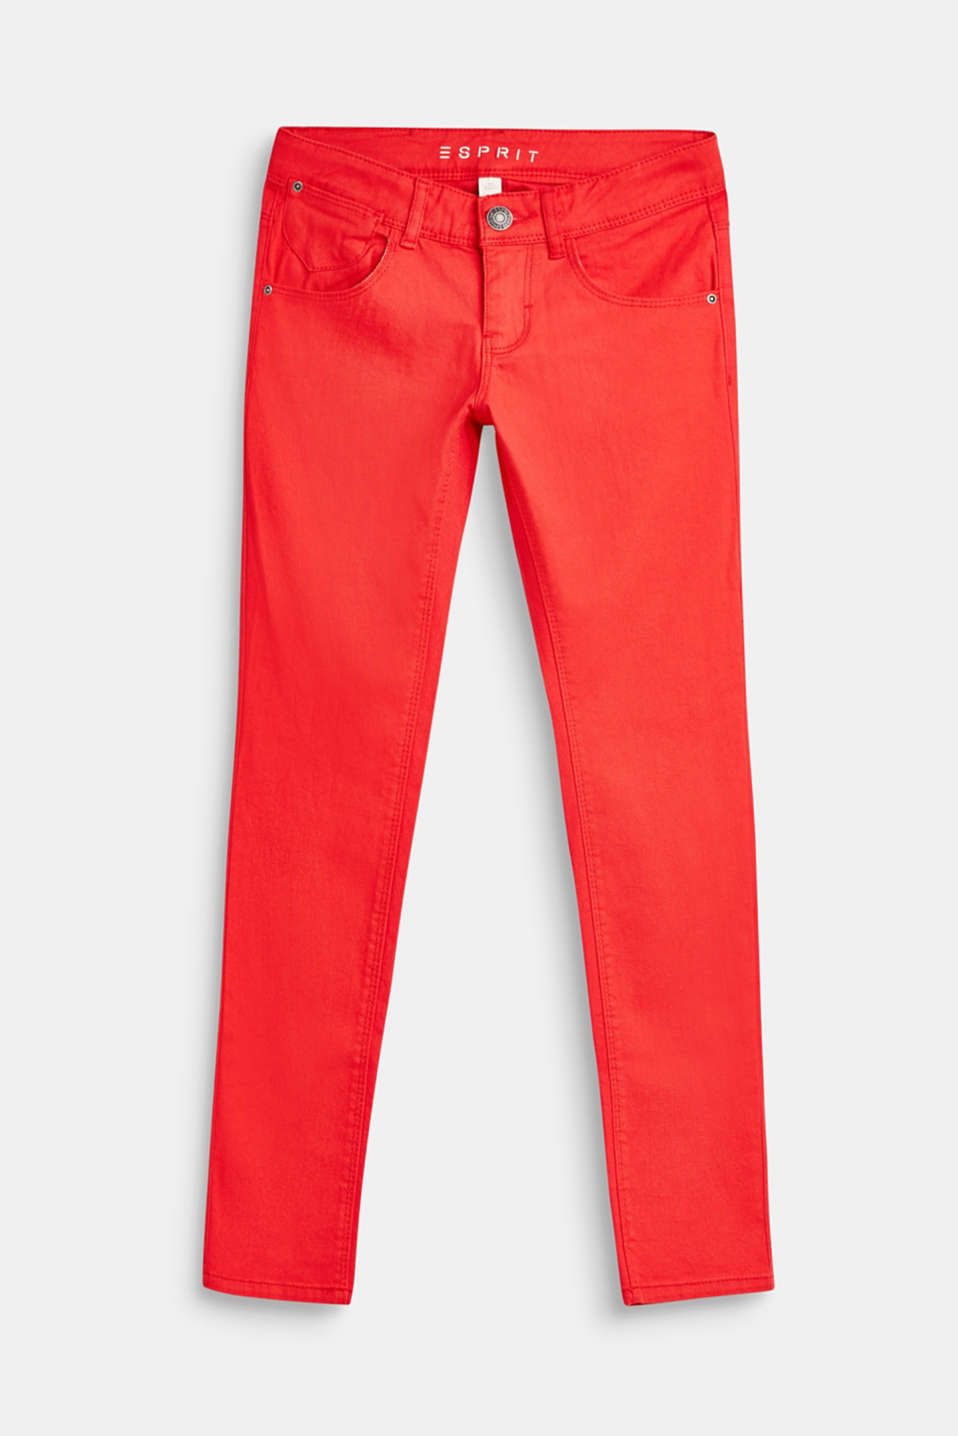 Esprit - Colored Stretch-Jeans mit Penny Pocket